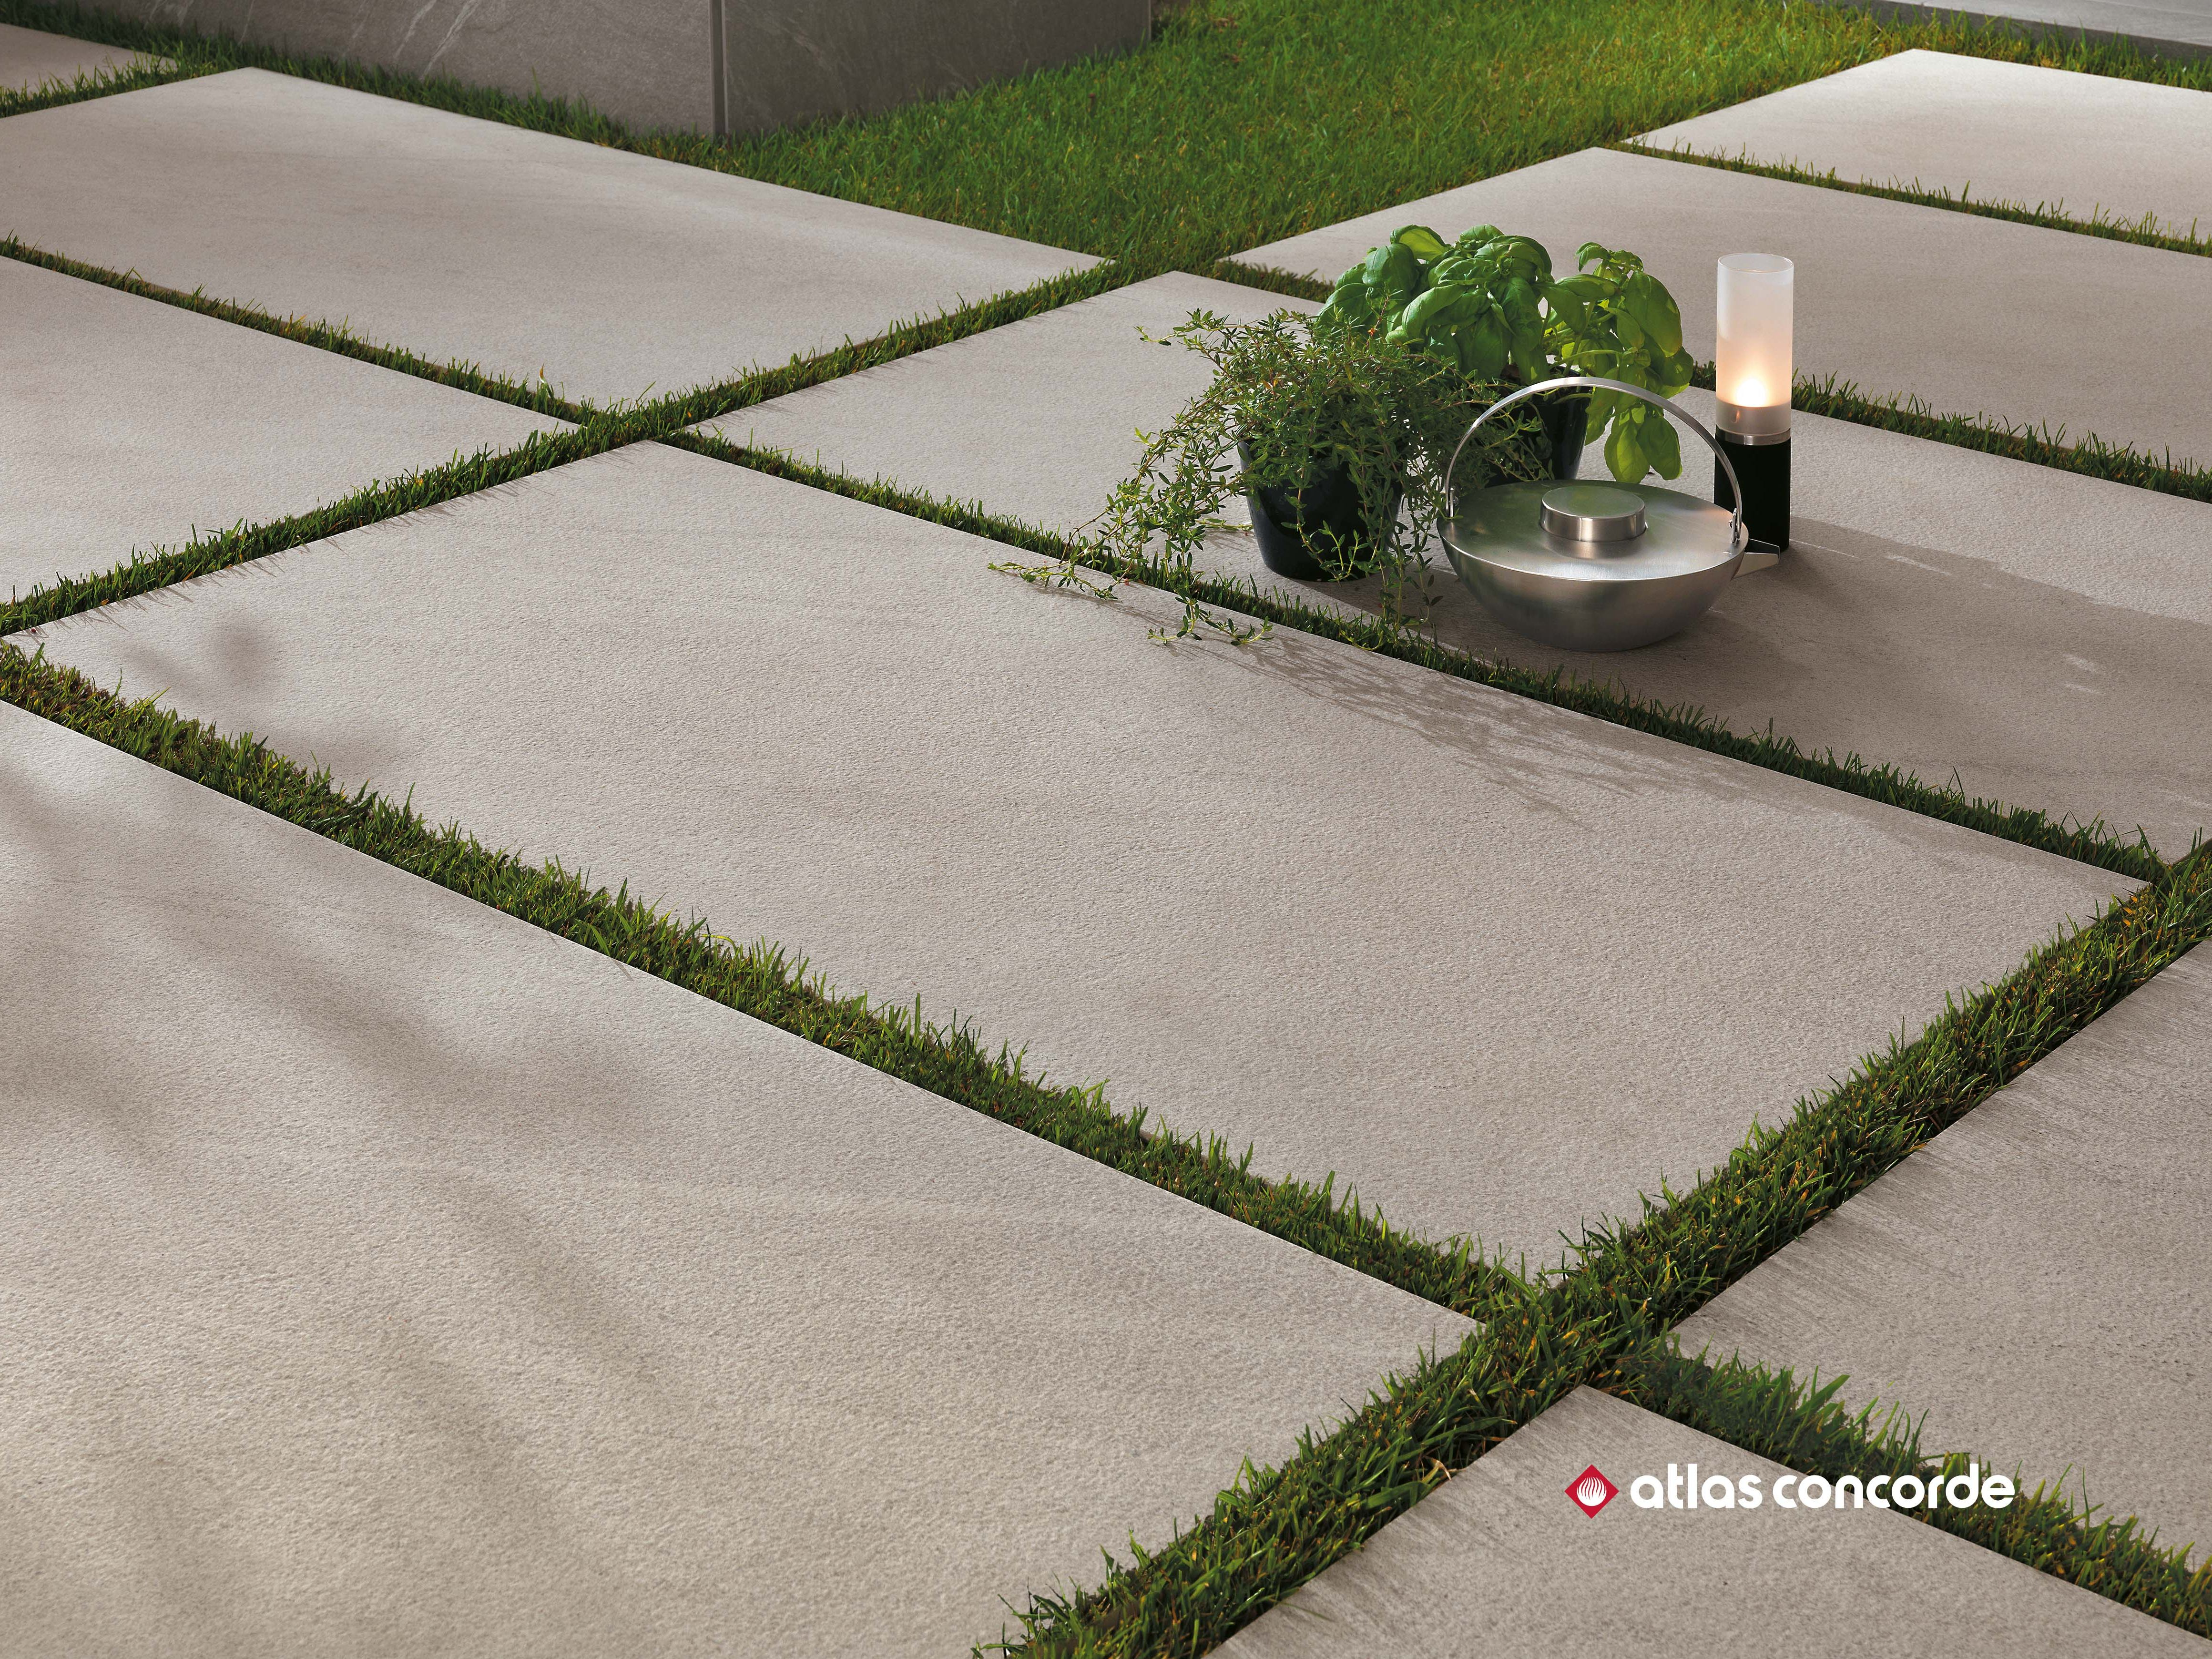 Outdoor ceramic tile